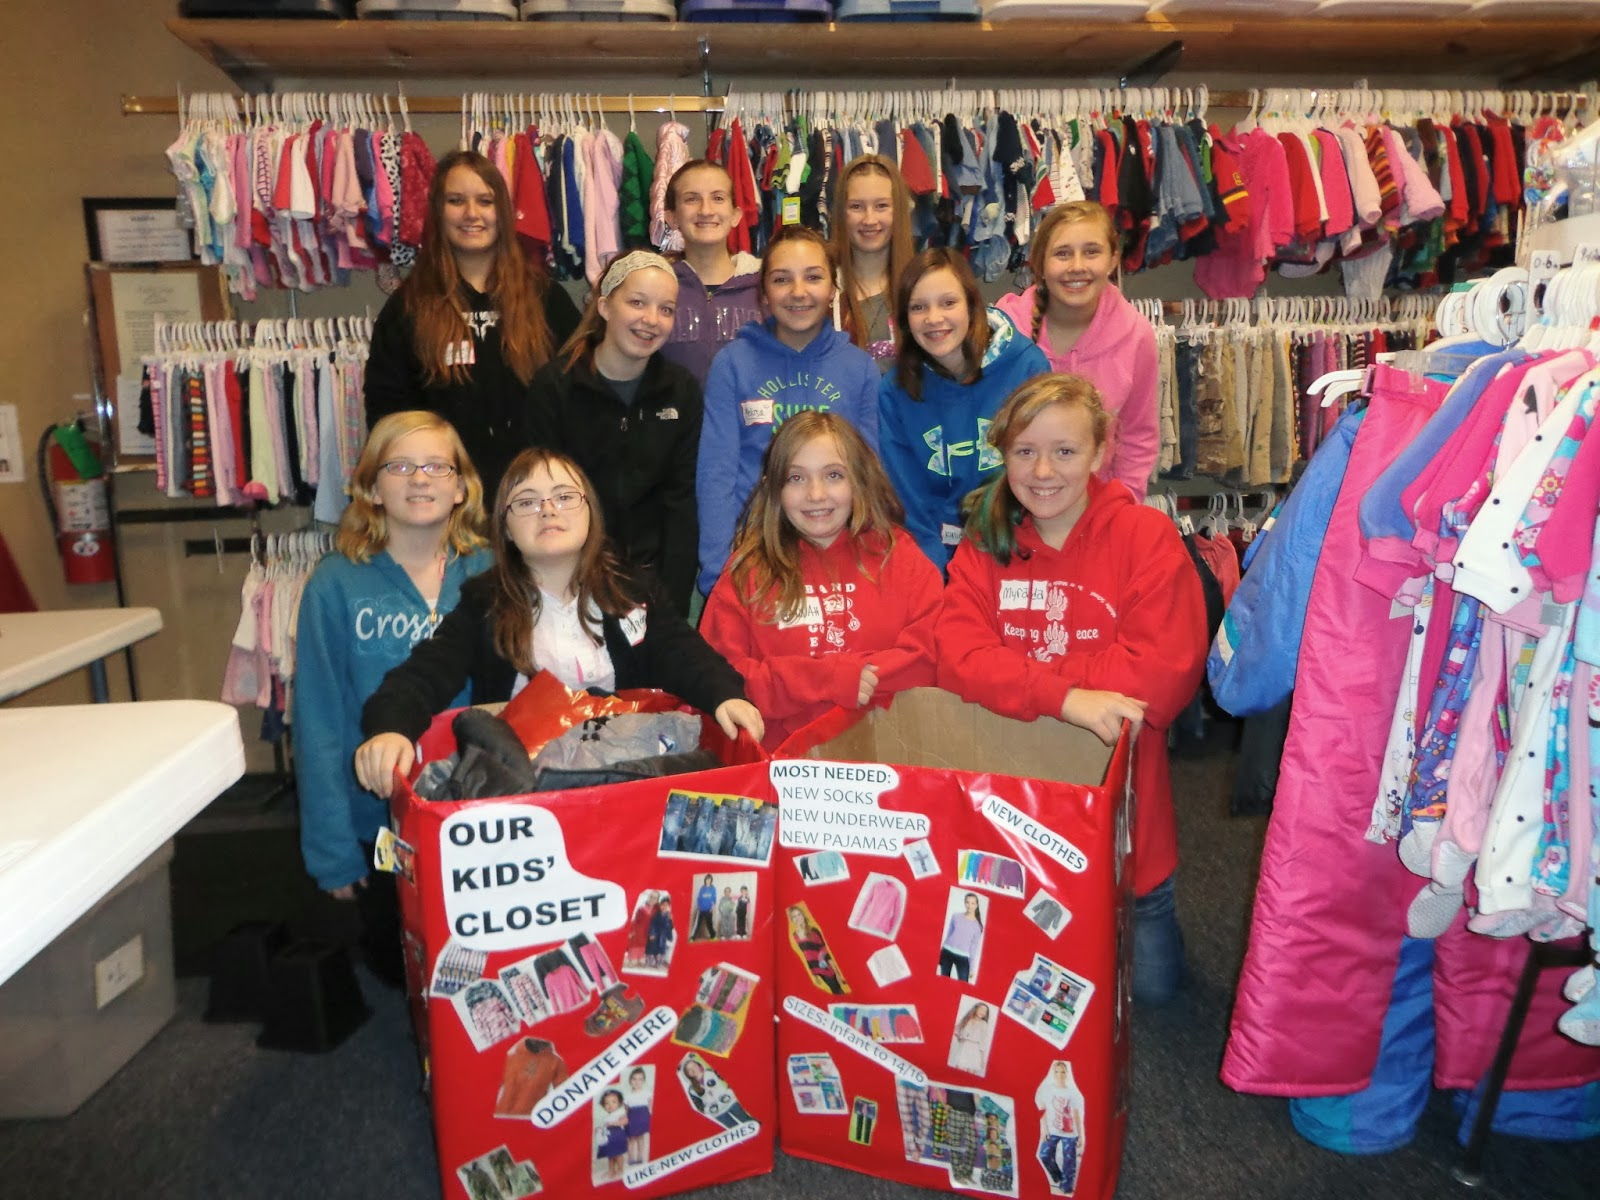 St. Johnu0027s Lutheran Church Confirmation Class Recently Held A Very  Successful Clothing Drive To Benefit The Clients Of Our Kidsu0027 Closet.